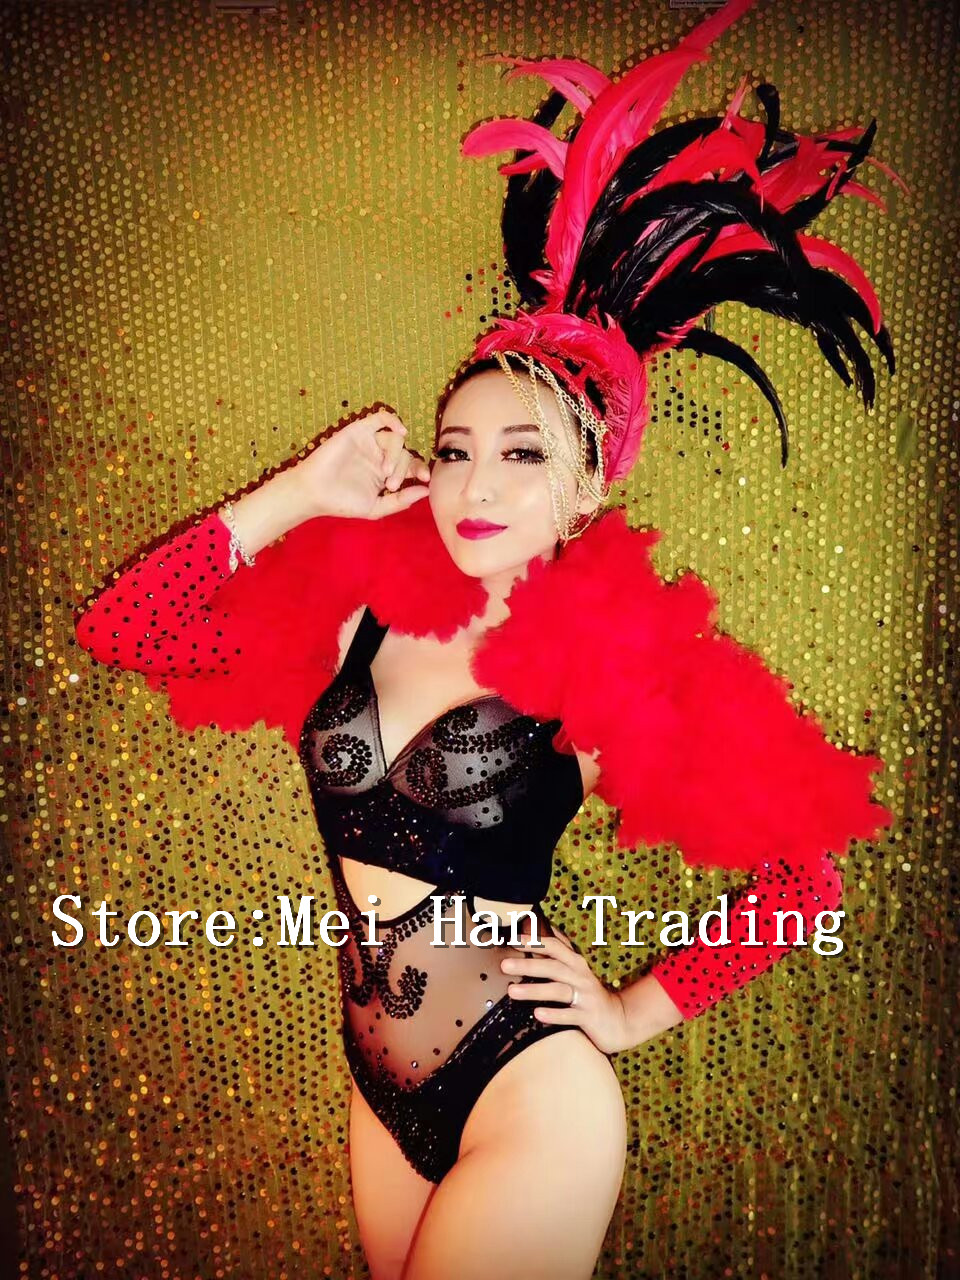 Independent Sexy Black Rhinestone Bodysuit Outfit Feather Headdress Women's Bar Dance Costume Stage Show Perspective Nightclub Singer Wear Fragrant (In) Flavor